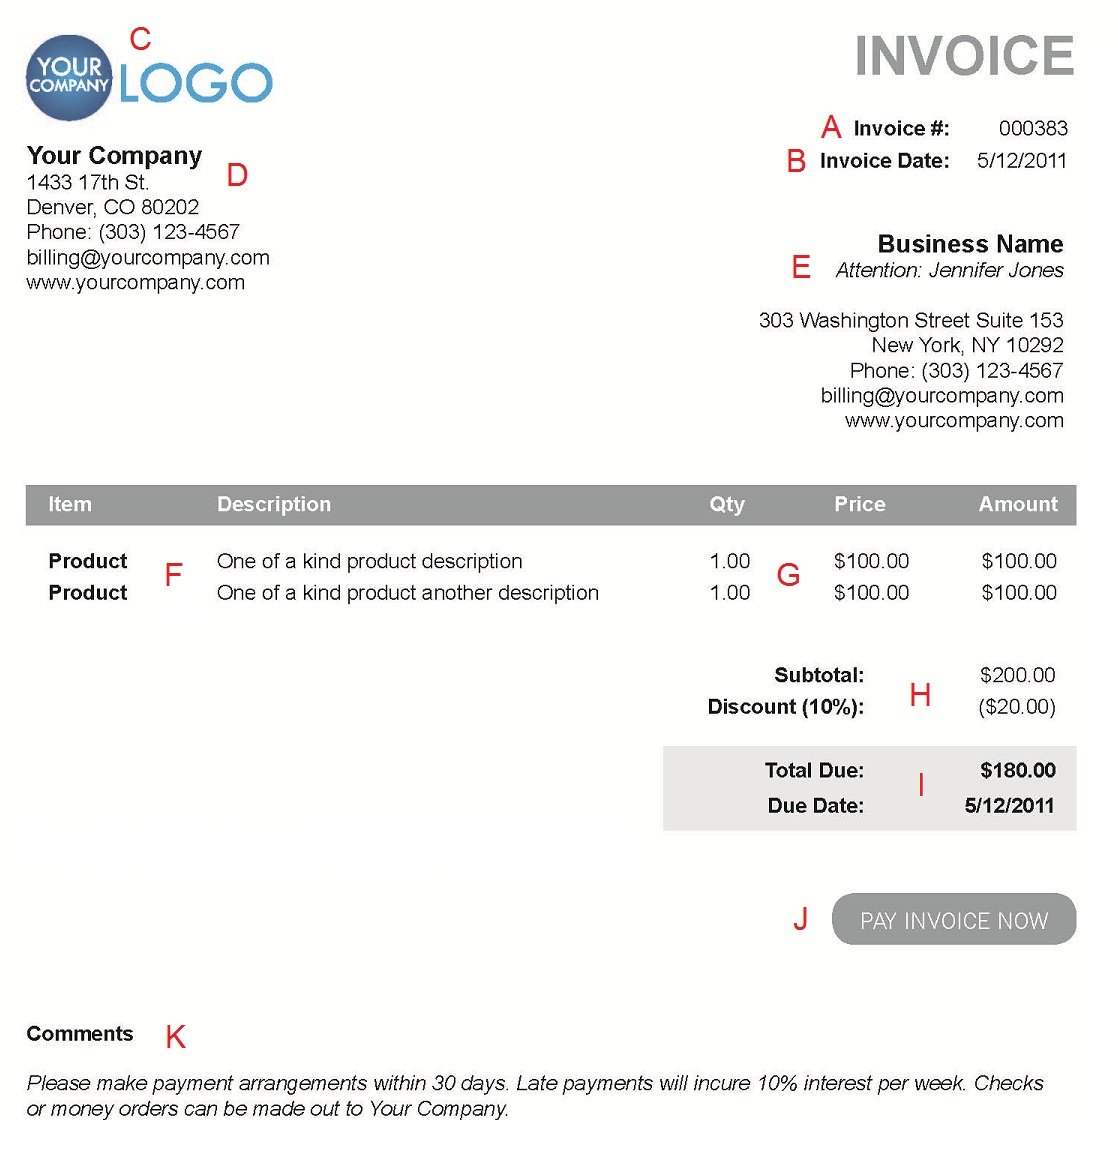 Coachoutletonlineplusus  Marvellous The  Different Sections Of An Electronic Payment Invoice With Marvelous A  With Archaic Pro Forma Invoice Sample Also What Is An Invoices In Addition Example Of Invoices Templates And Invoice On Word As Well As Online Invoicing Tool Additionally Cool Invoice Designs From Paysimplecom With Coachoutletonlineplusus  Marvelous The  Different Sections Of An Electronic Payment Invoice With Archaic A  And Marvellous Pro Forma Invoice Sample Also What Is An Invoices In Addition Example Of Invoices Templates From Paysimplecom